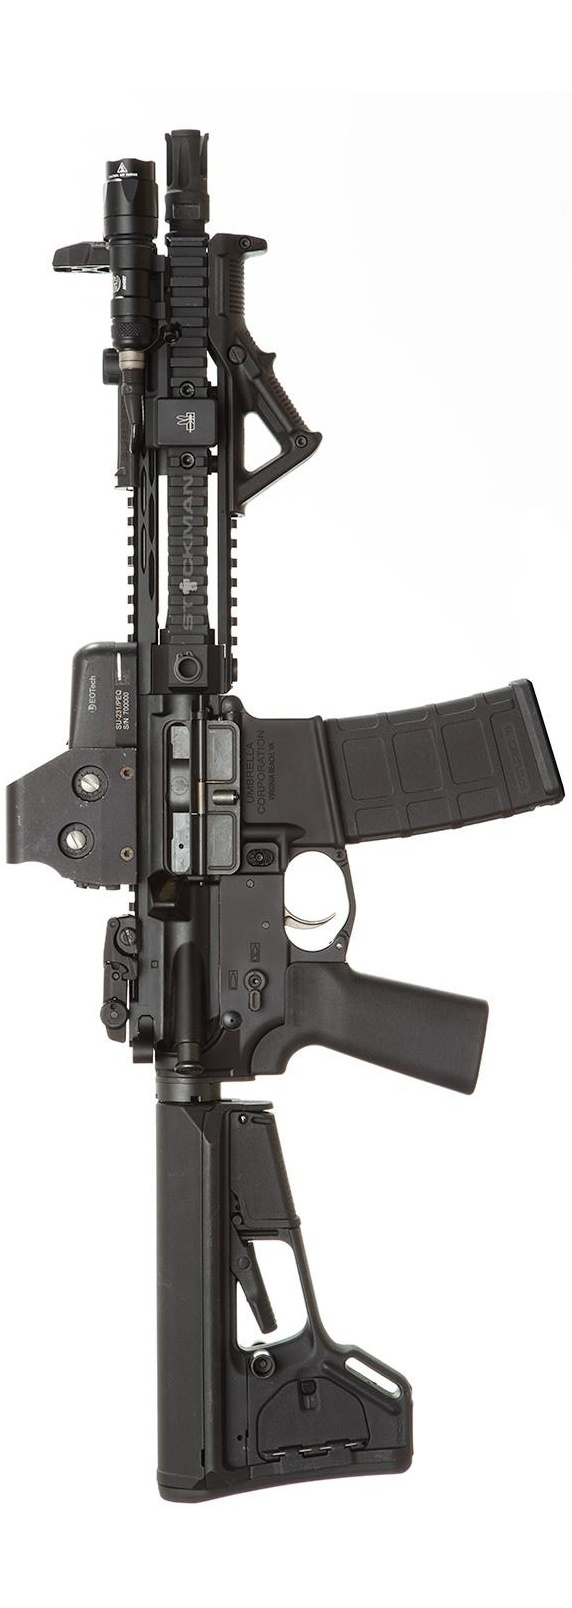 UCWRG Lower and Rifle Grip on a little SBR. Photo by Stickman.